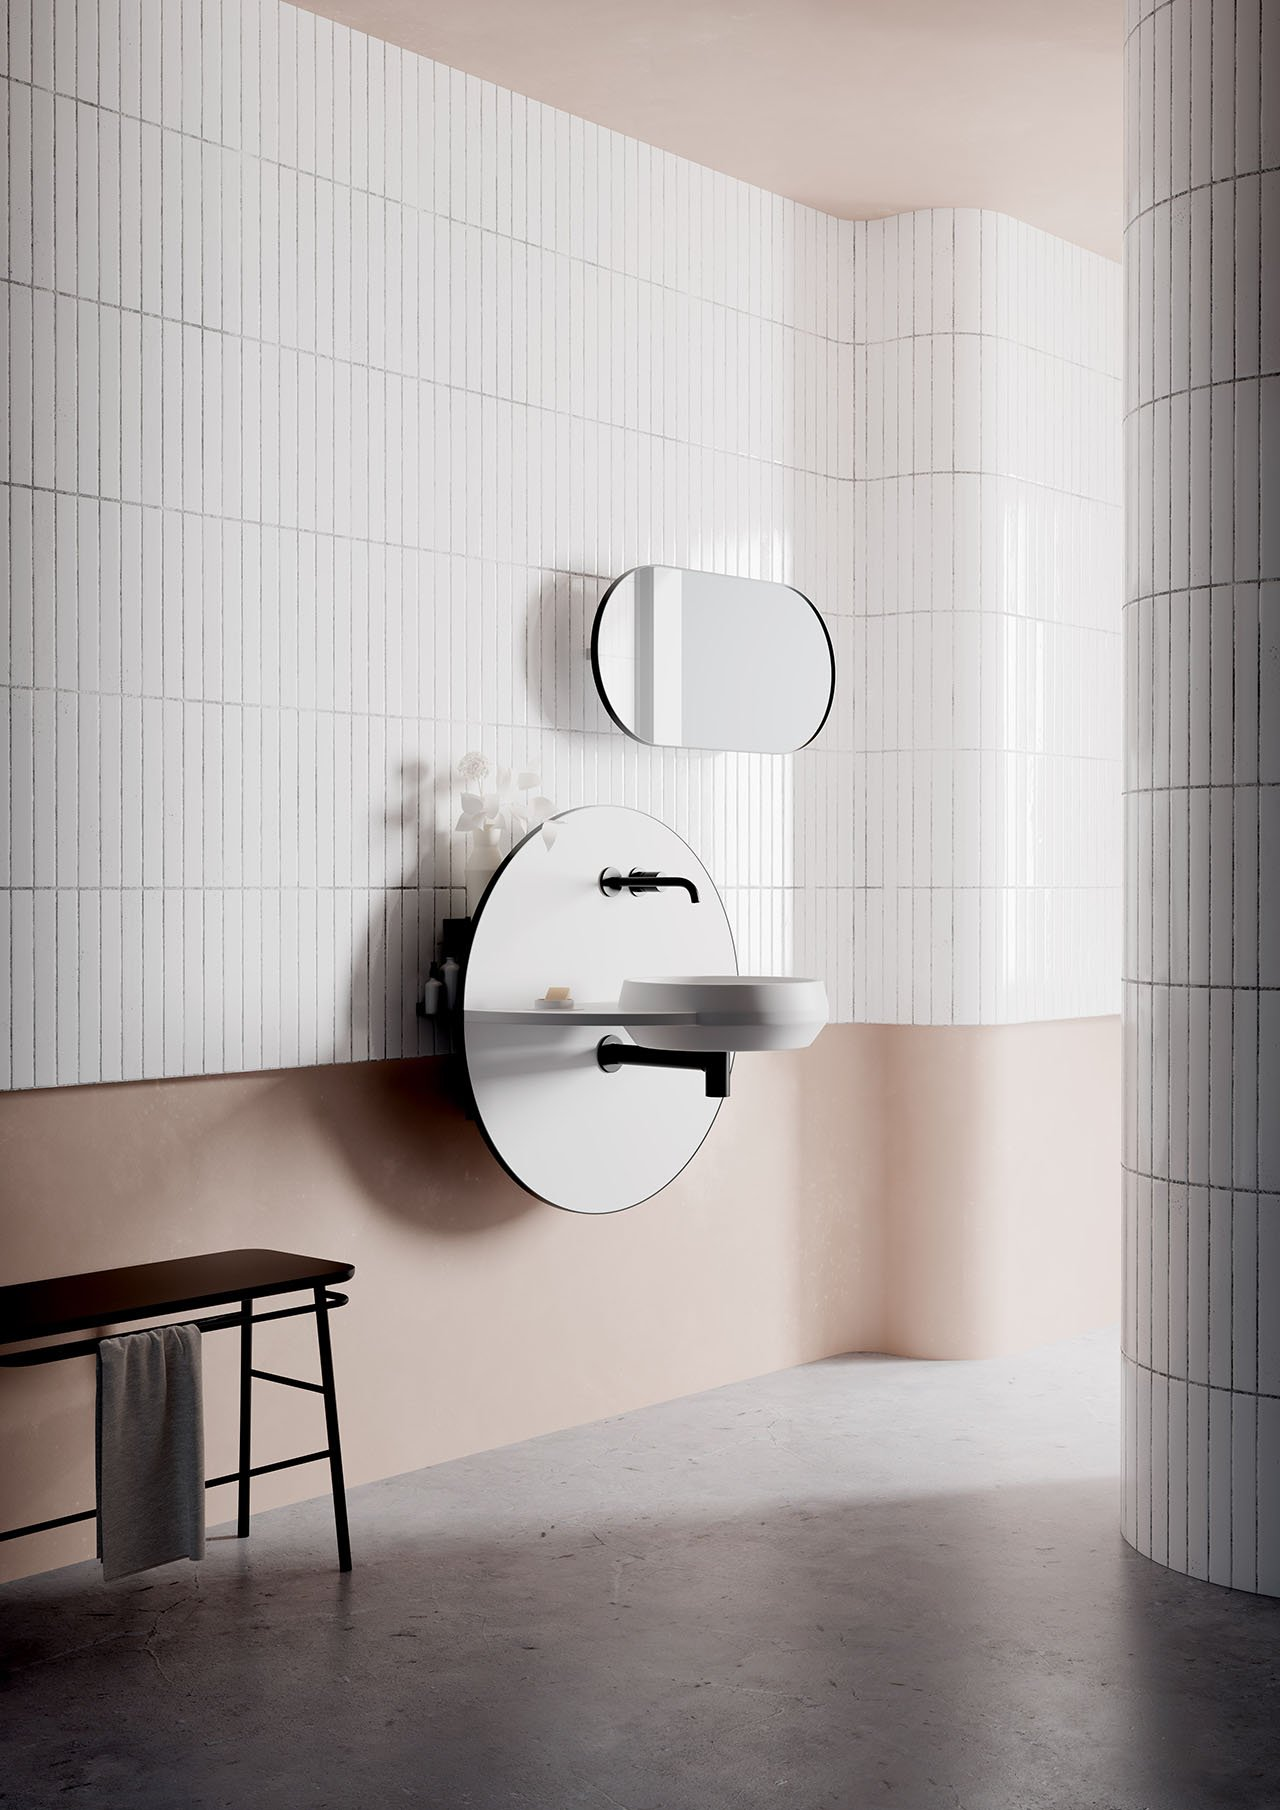 Arco multifunctional bathroom system by Spanish design studio Mut for Ex.t.